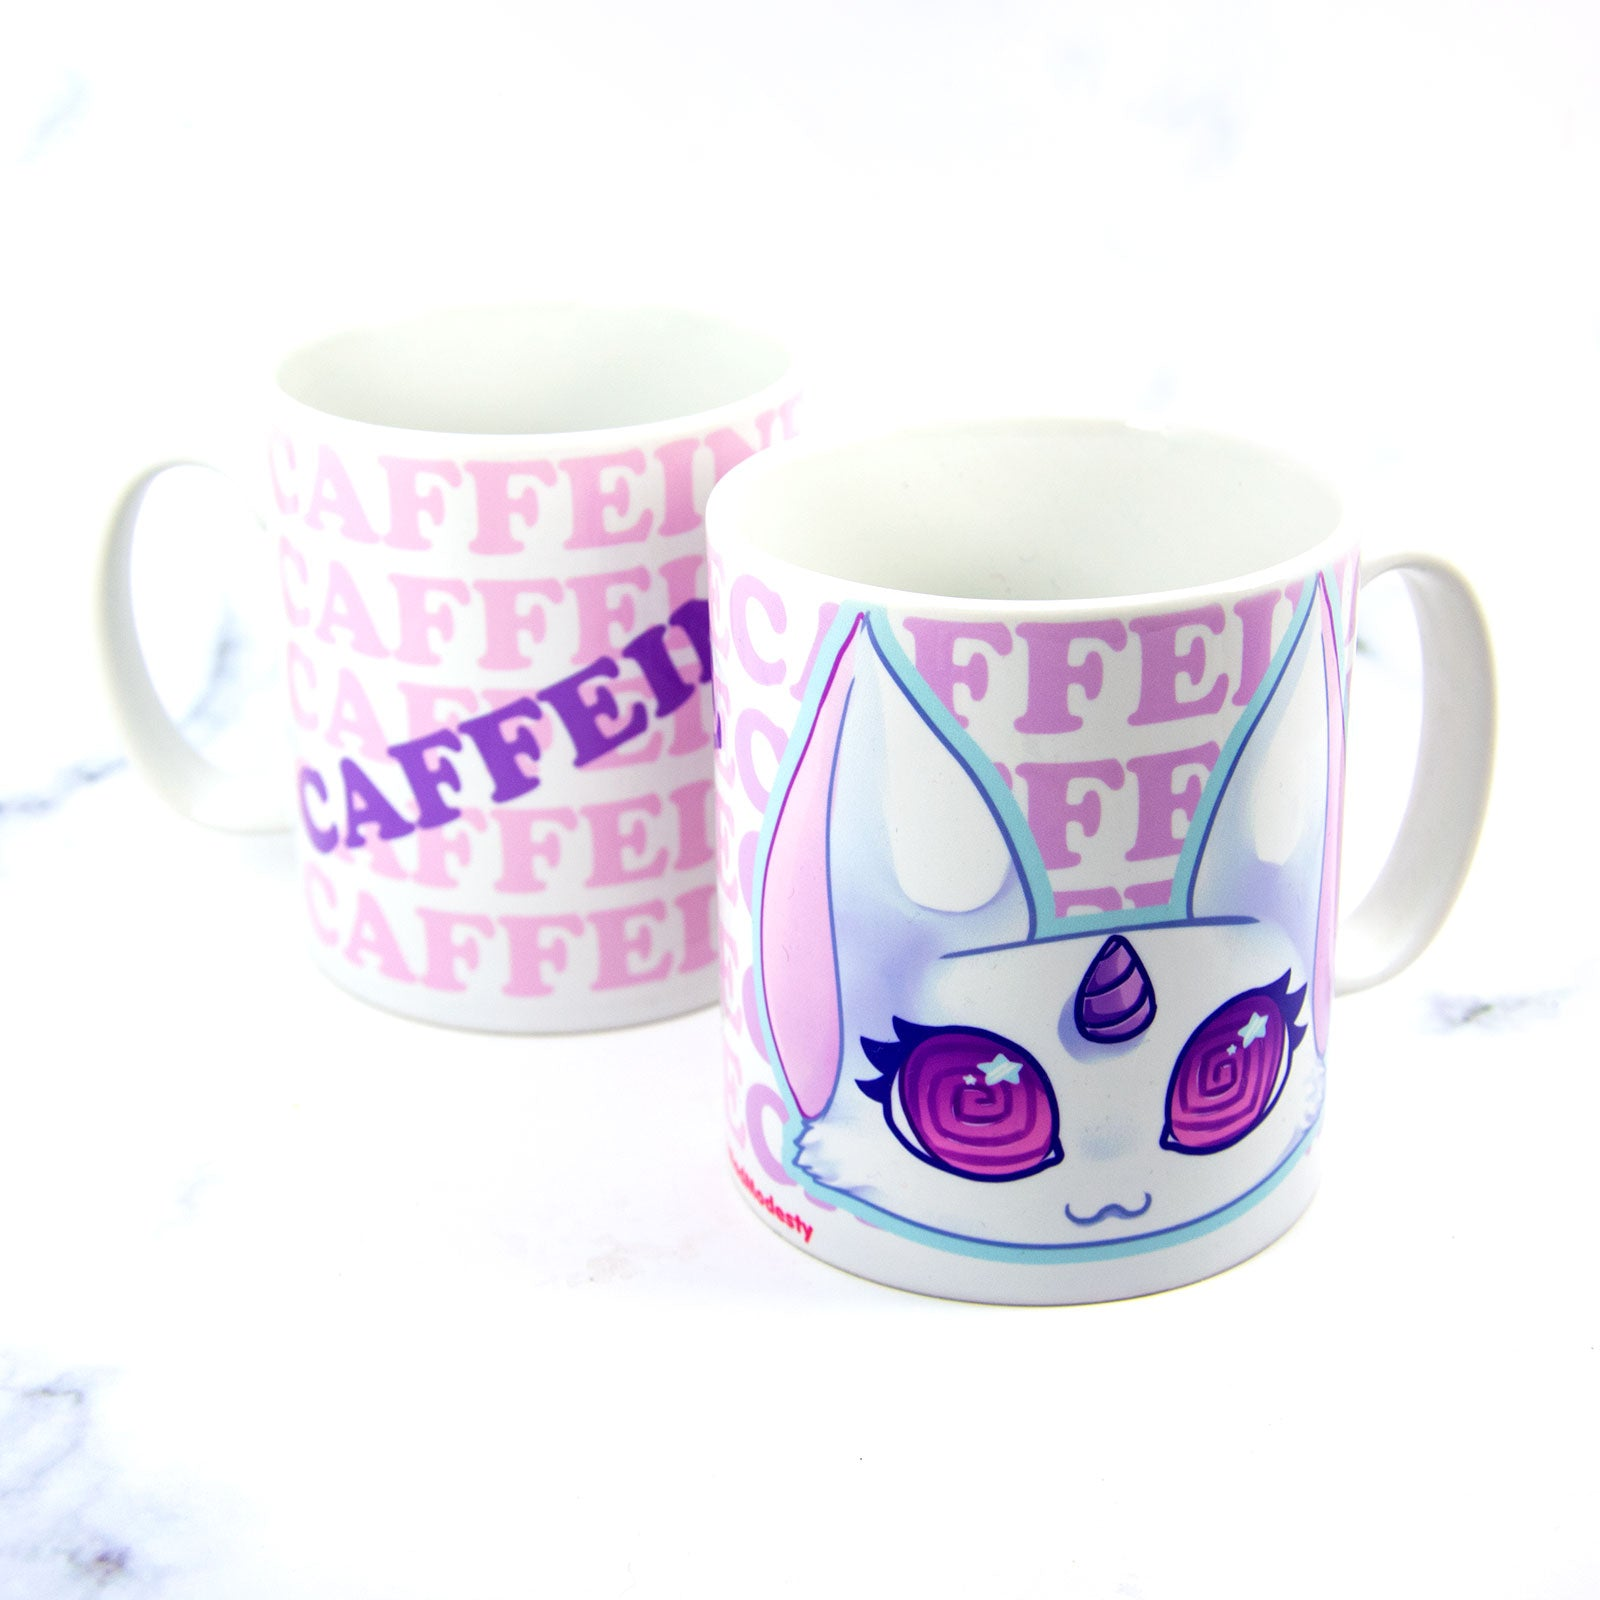 Kawaii coffee lover unicorn cat mug - MadModesty